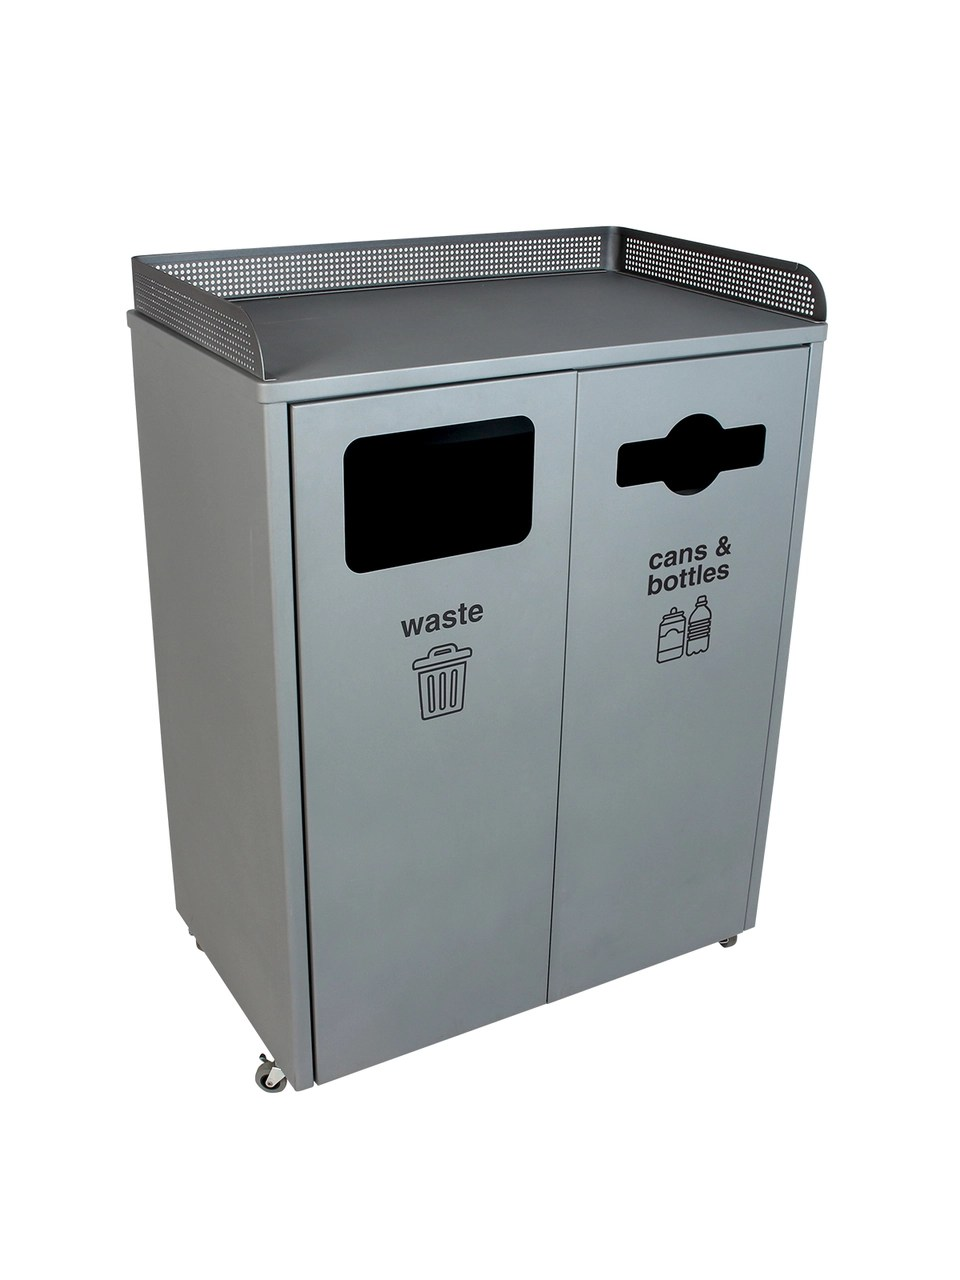 Cool Trash Bins Trash Cans For Restaurants Cafeterias Food Service